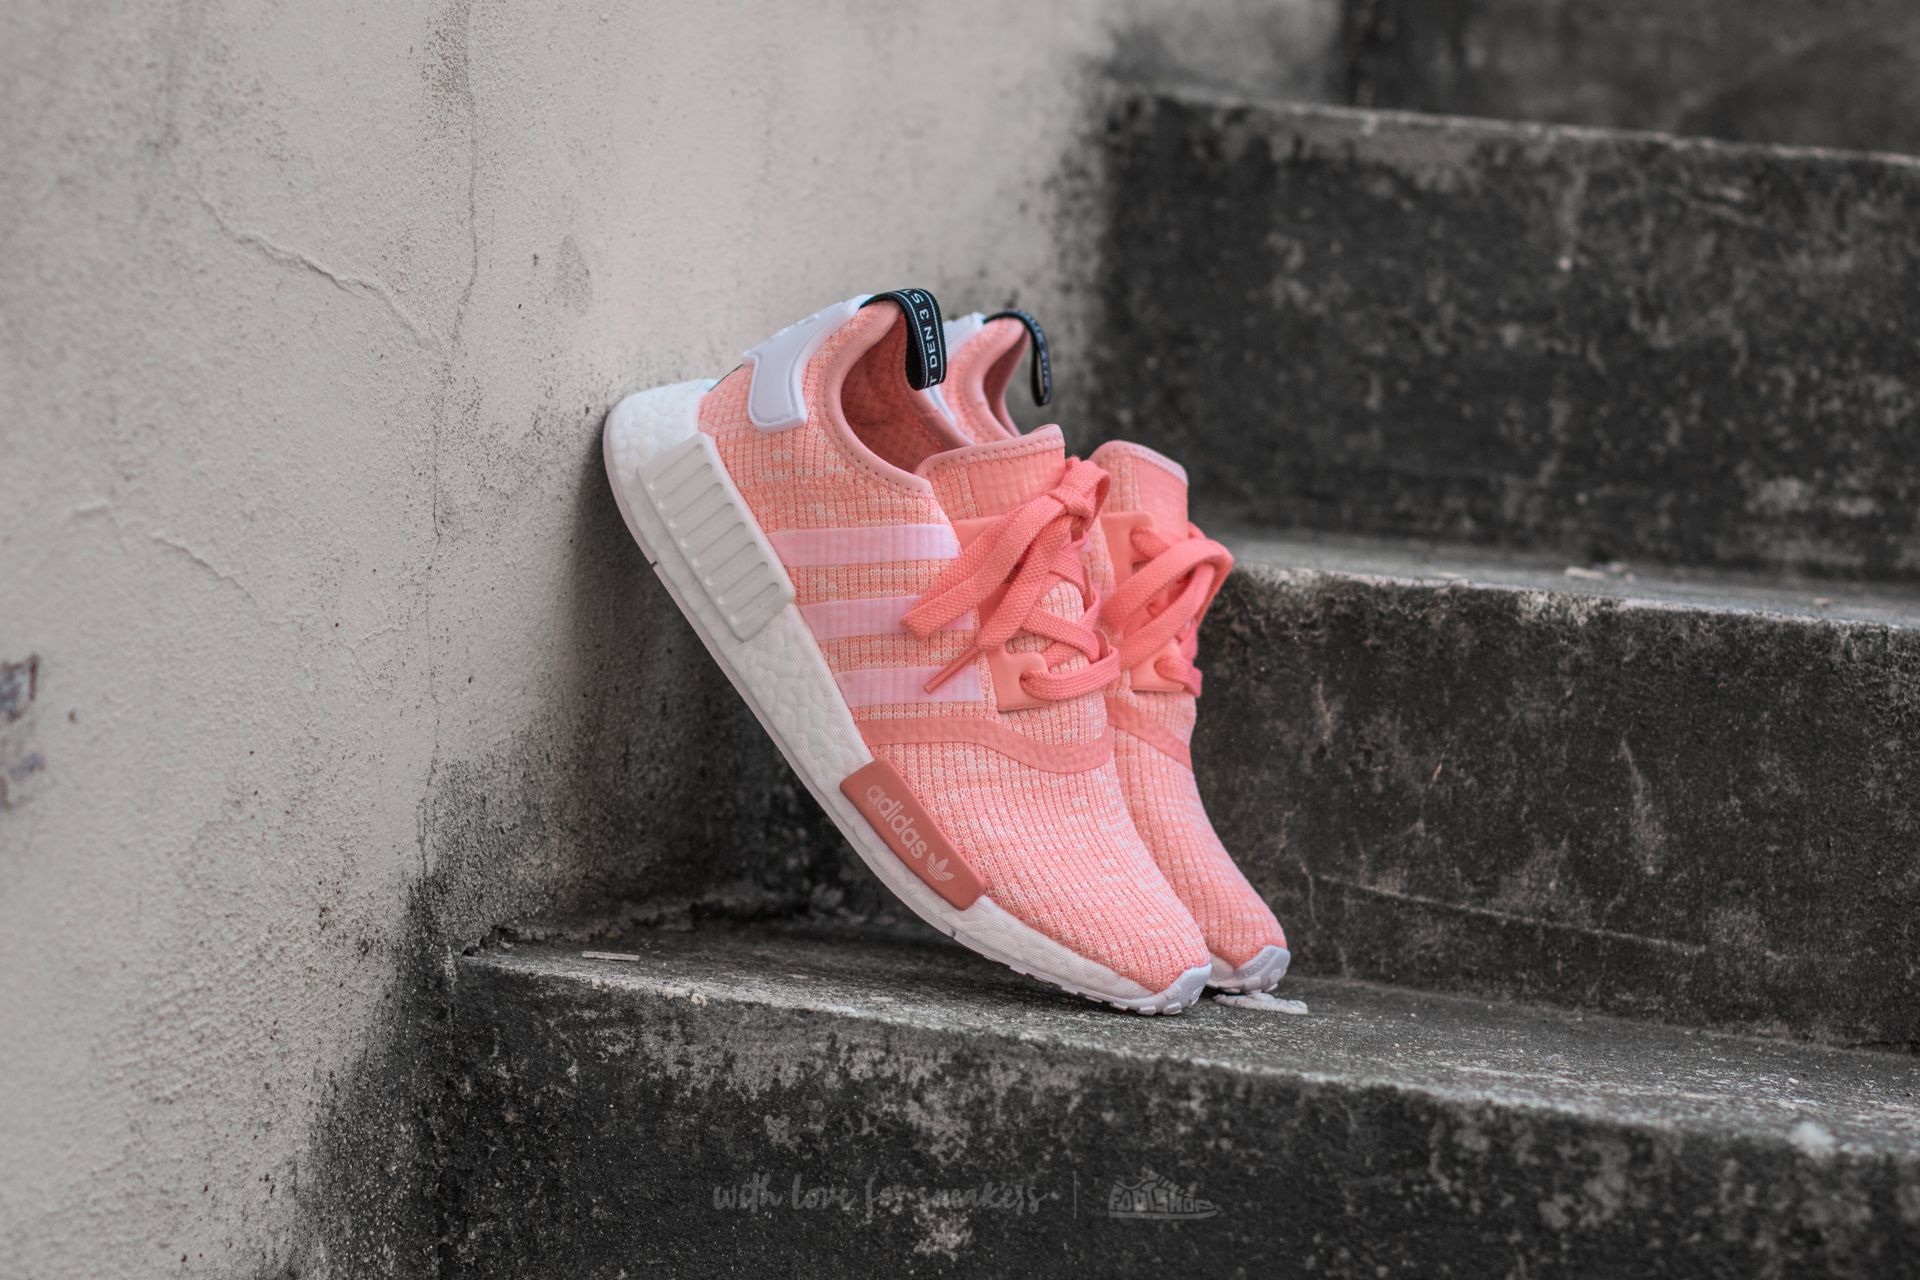 d0f96acaa47 adidas NMD R1 W Sun Glow  Ftw White  Haze Coral